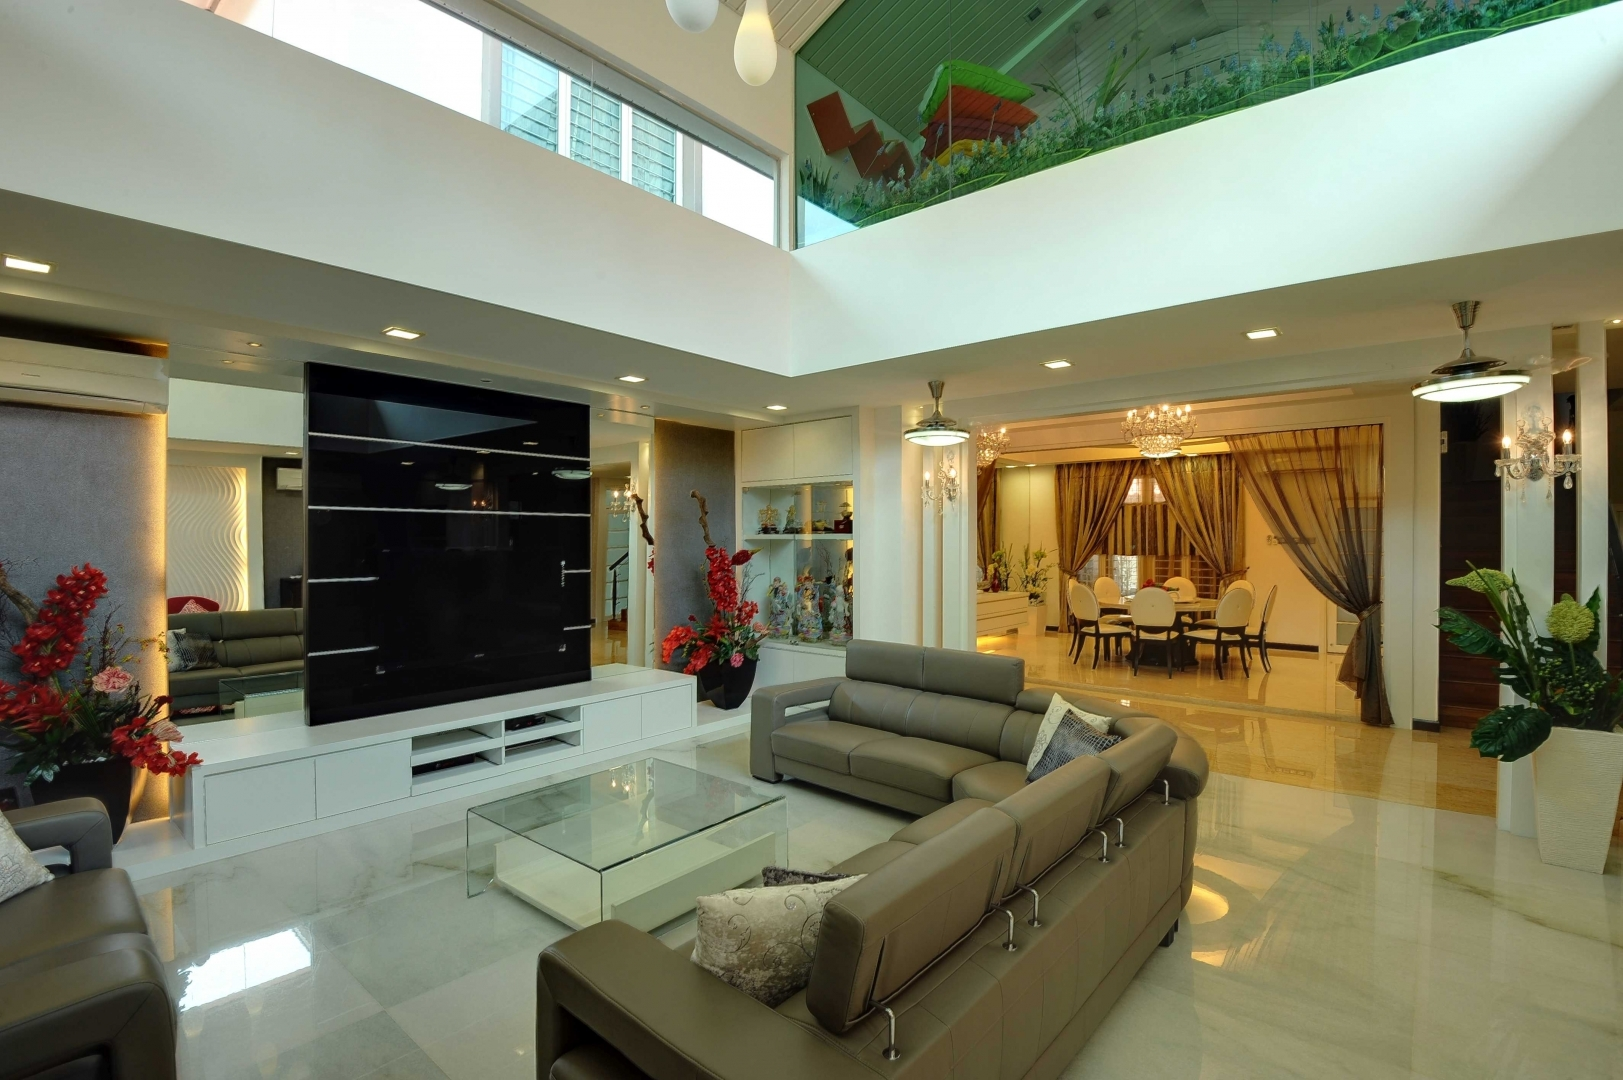 Modern Contemporary Interior  Setia Eco Park  Bungalow Interior Design  RENOF  Gallery